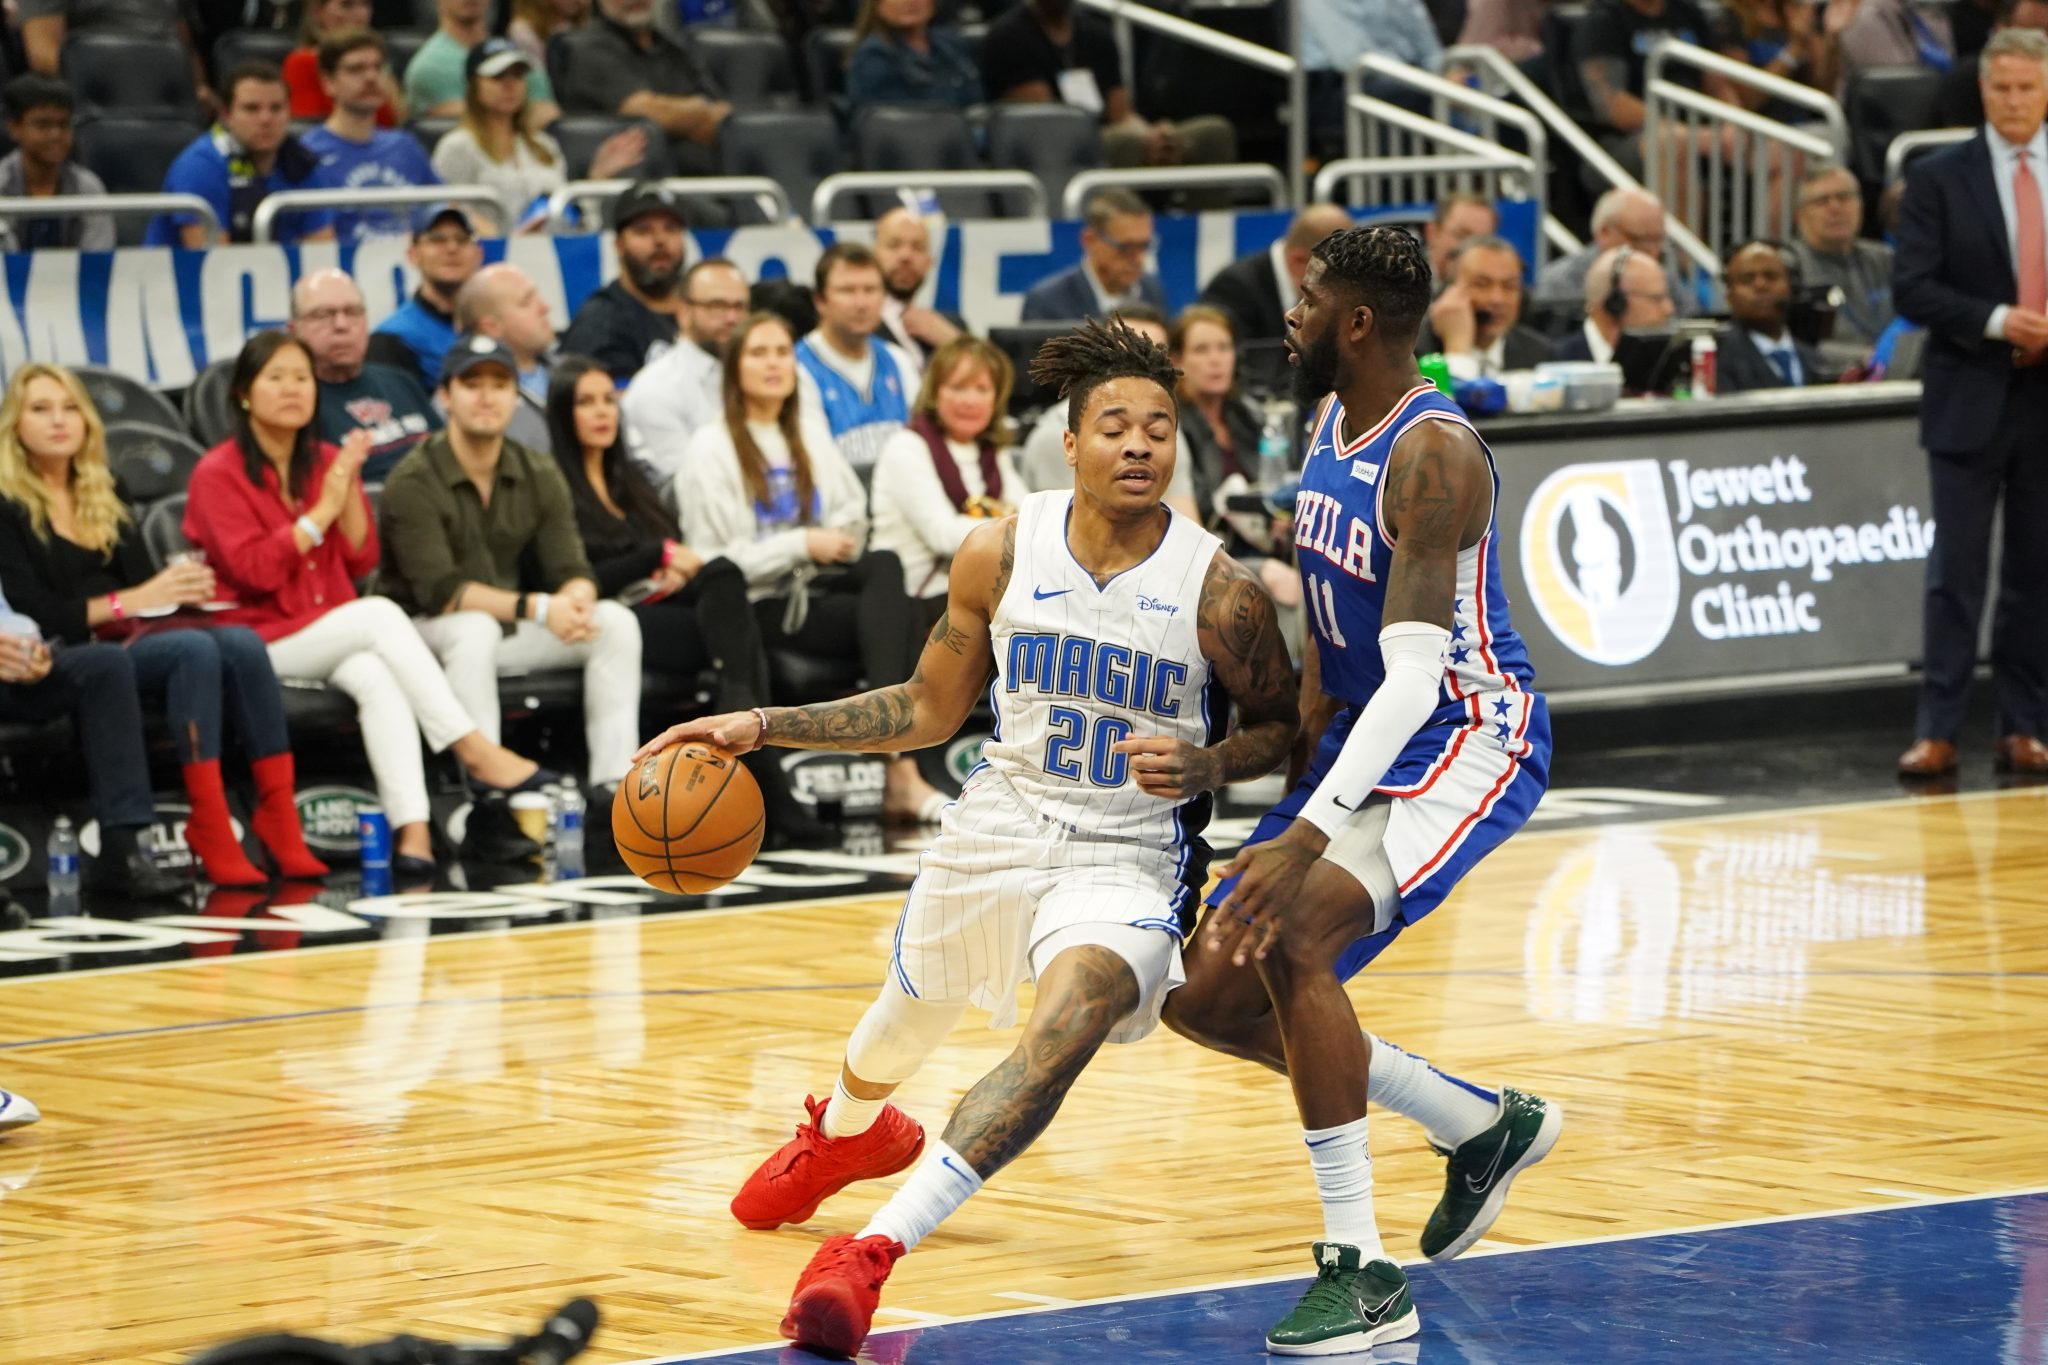 Orlando Magic hosts the Philadelphia 76ers at the Amway Arena in Orlando, Florida on Friday December 27, 2019.